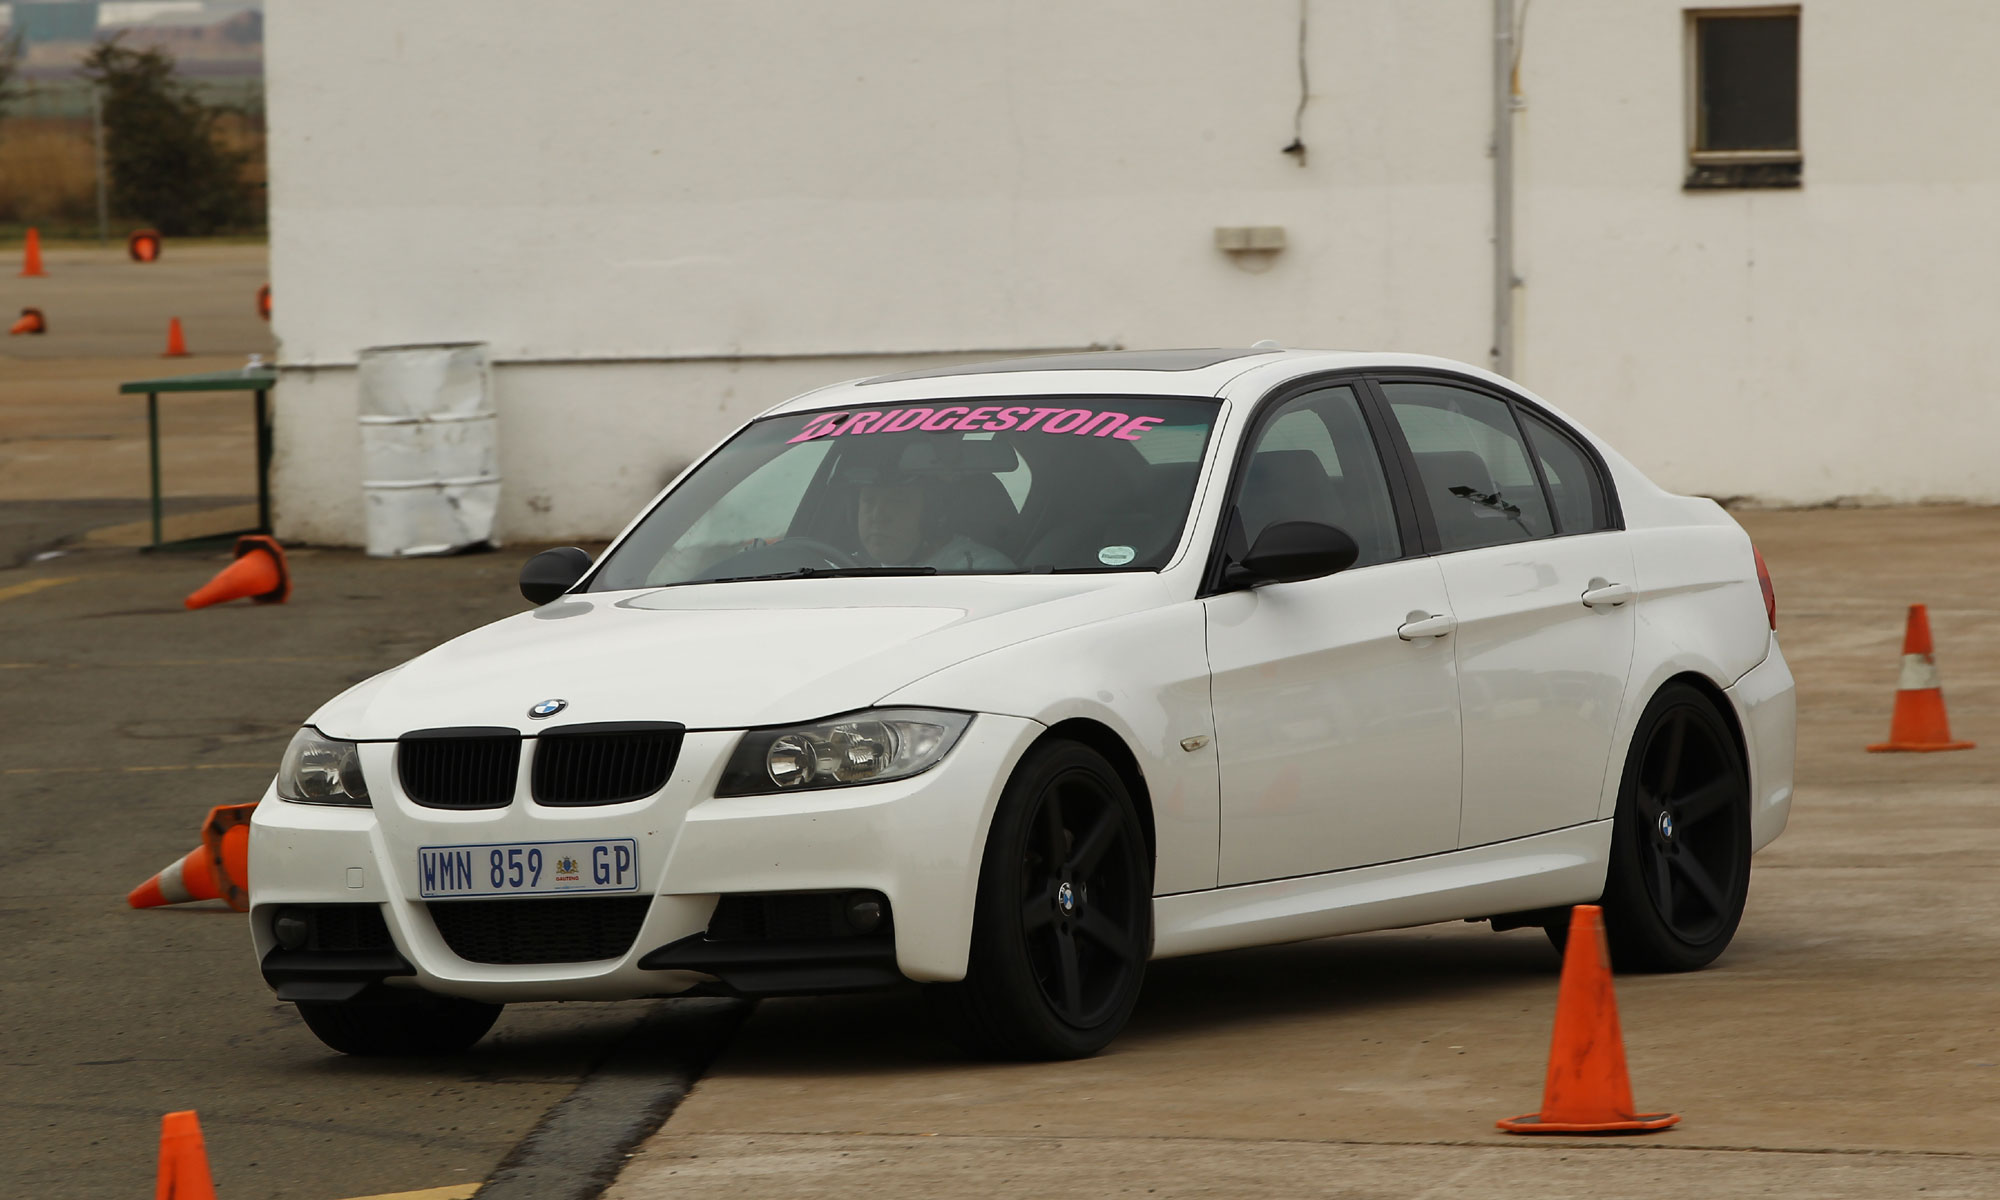 BMW 335i Racecar Build